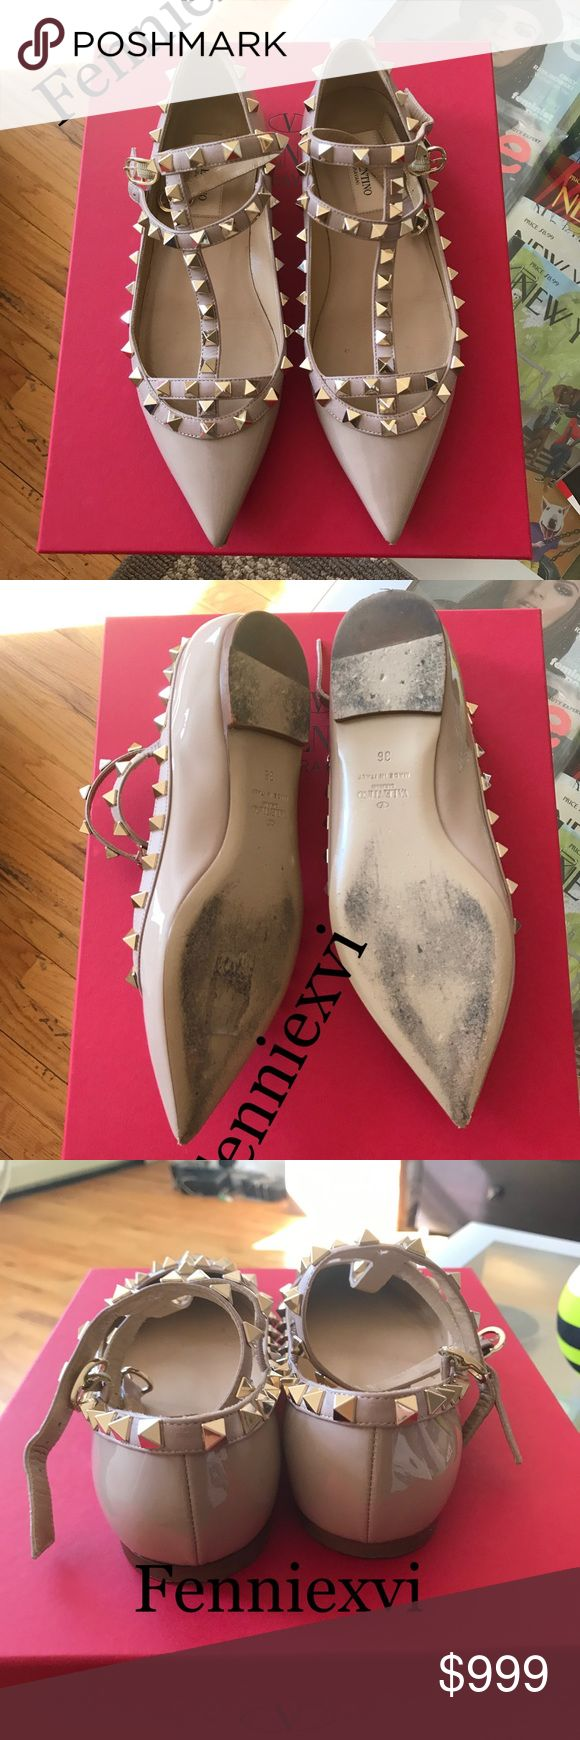 Valentino Nude/Poudre Patent Rockstud Flats Size 6 100% authentic, worn once! NO scuffs or marks on the surface of the leather. 9/10. Highly sought after classic color, sold out! Comes with original box and dustbag. NO TRADES! Email vixfennie@gmail.com for offers, questions and pictures. Look at my previous sales and comments from buyers. NO SCAMMERS🙅 Valentino Shoes Flats & Loafers